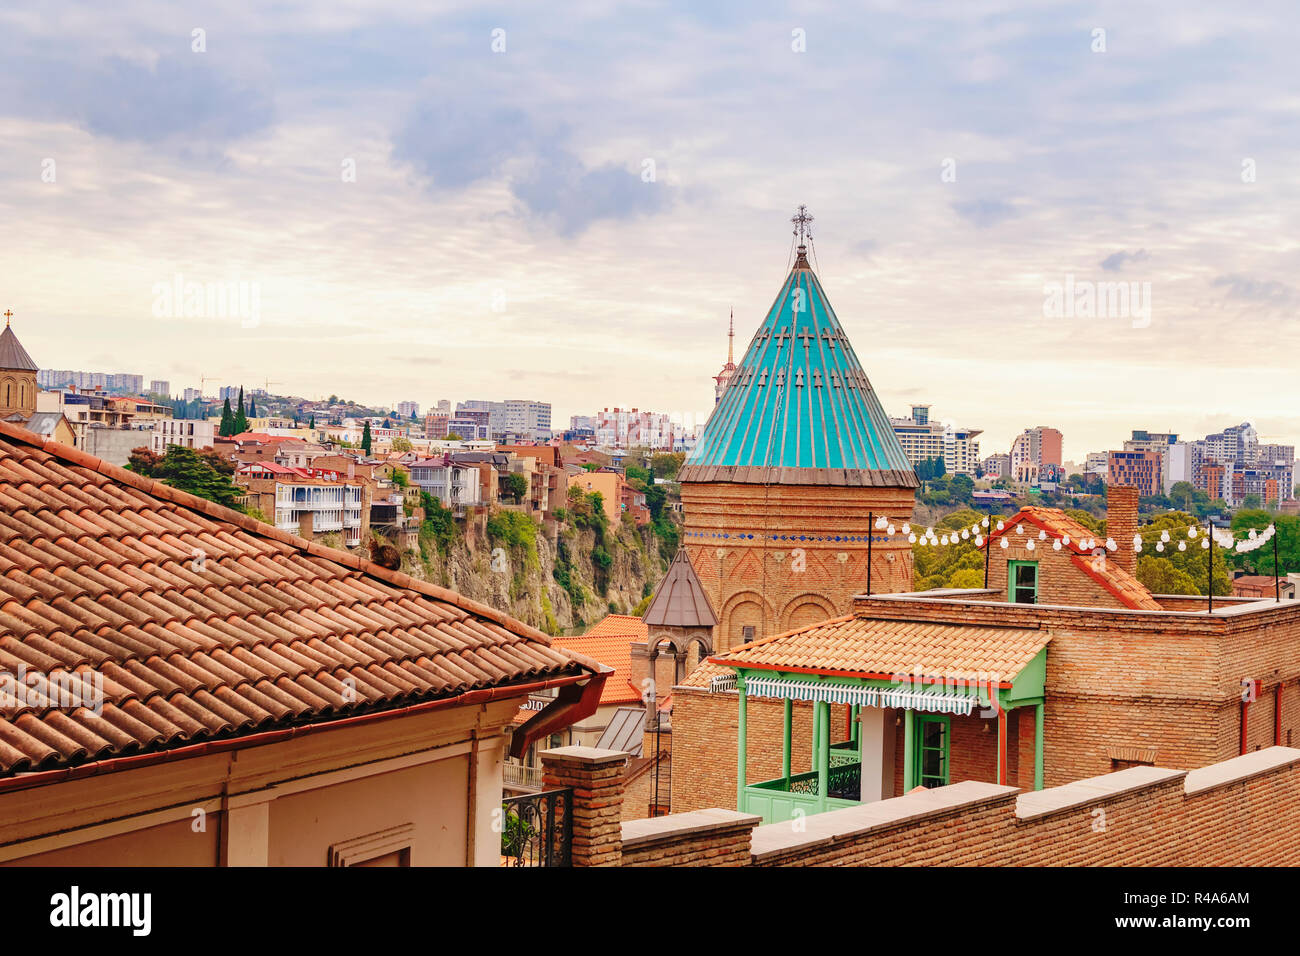 Sky over the Tbilisi Old Town neighborhood with a view on church tower and vivid red brick houses with their rooftops. Tbilisi, Georgia. Stock Photo